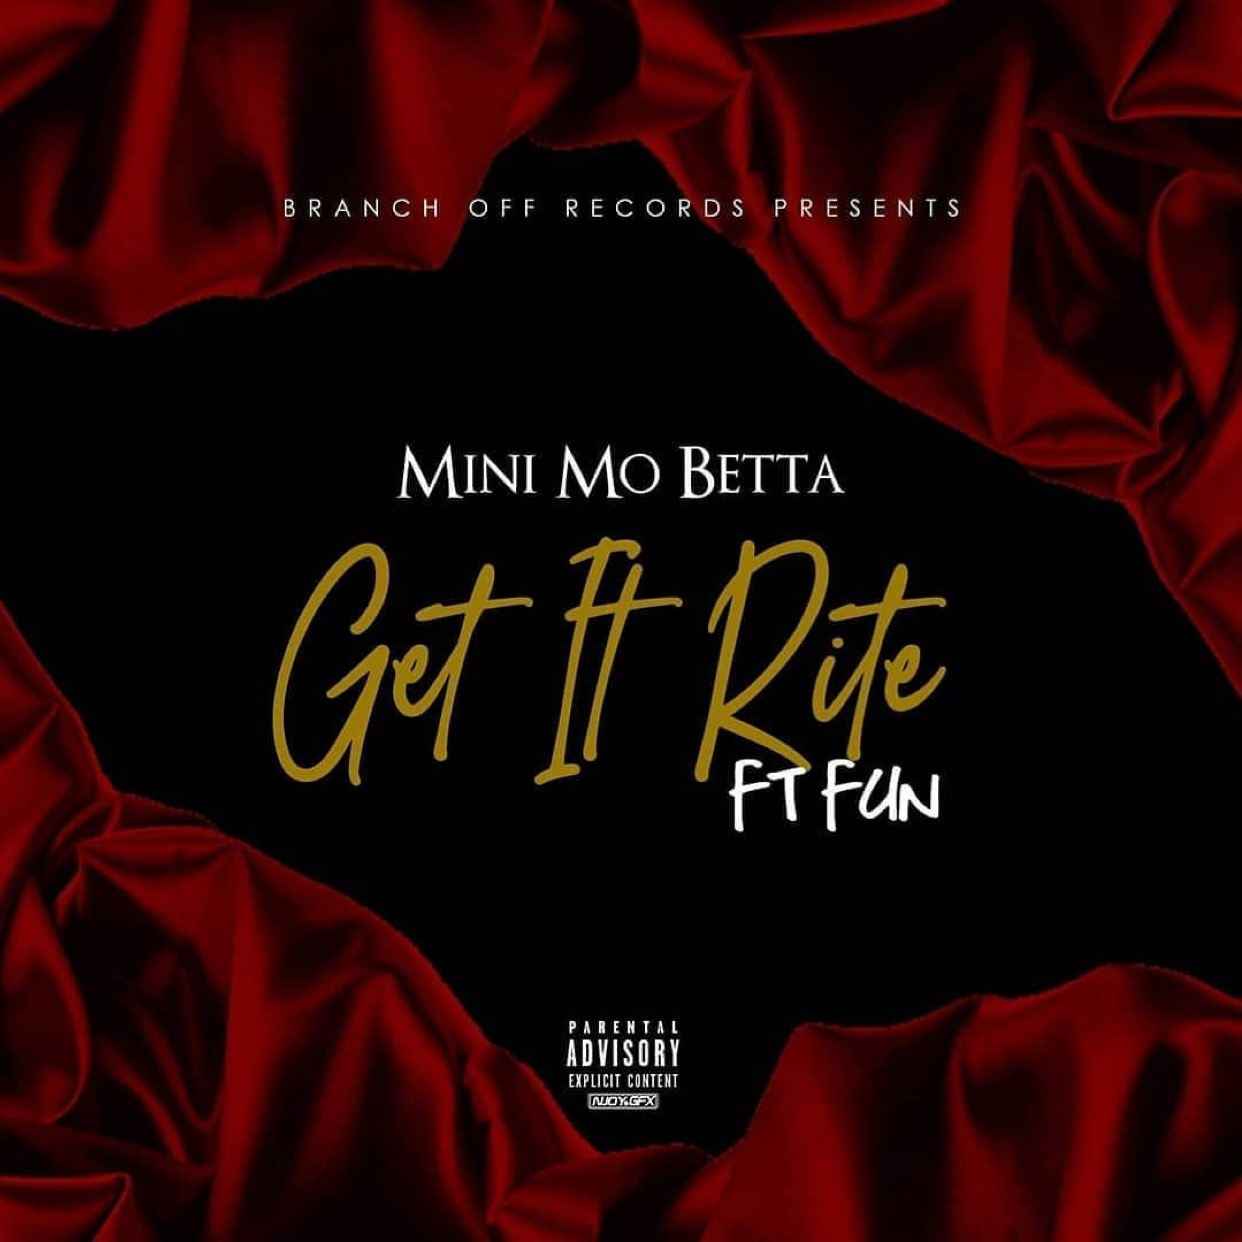 Rejuvenating Rap and Hip Hop with Originality and Flair: BranchoffRecords.com's Rising Artist Mini Mo Betta Amazes with New Single